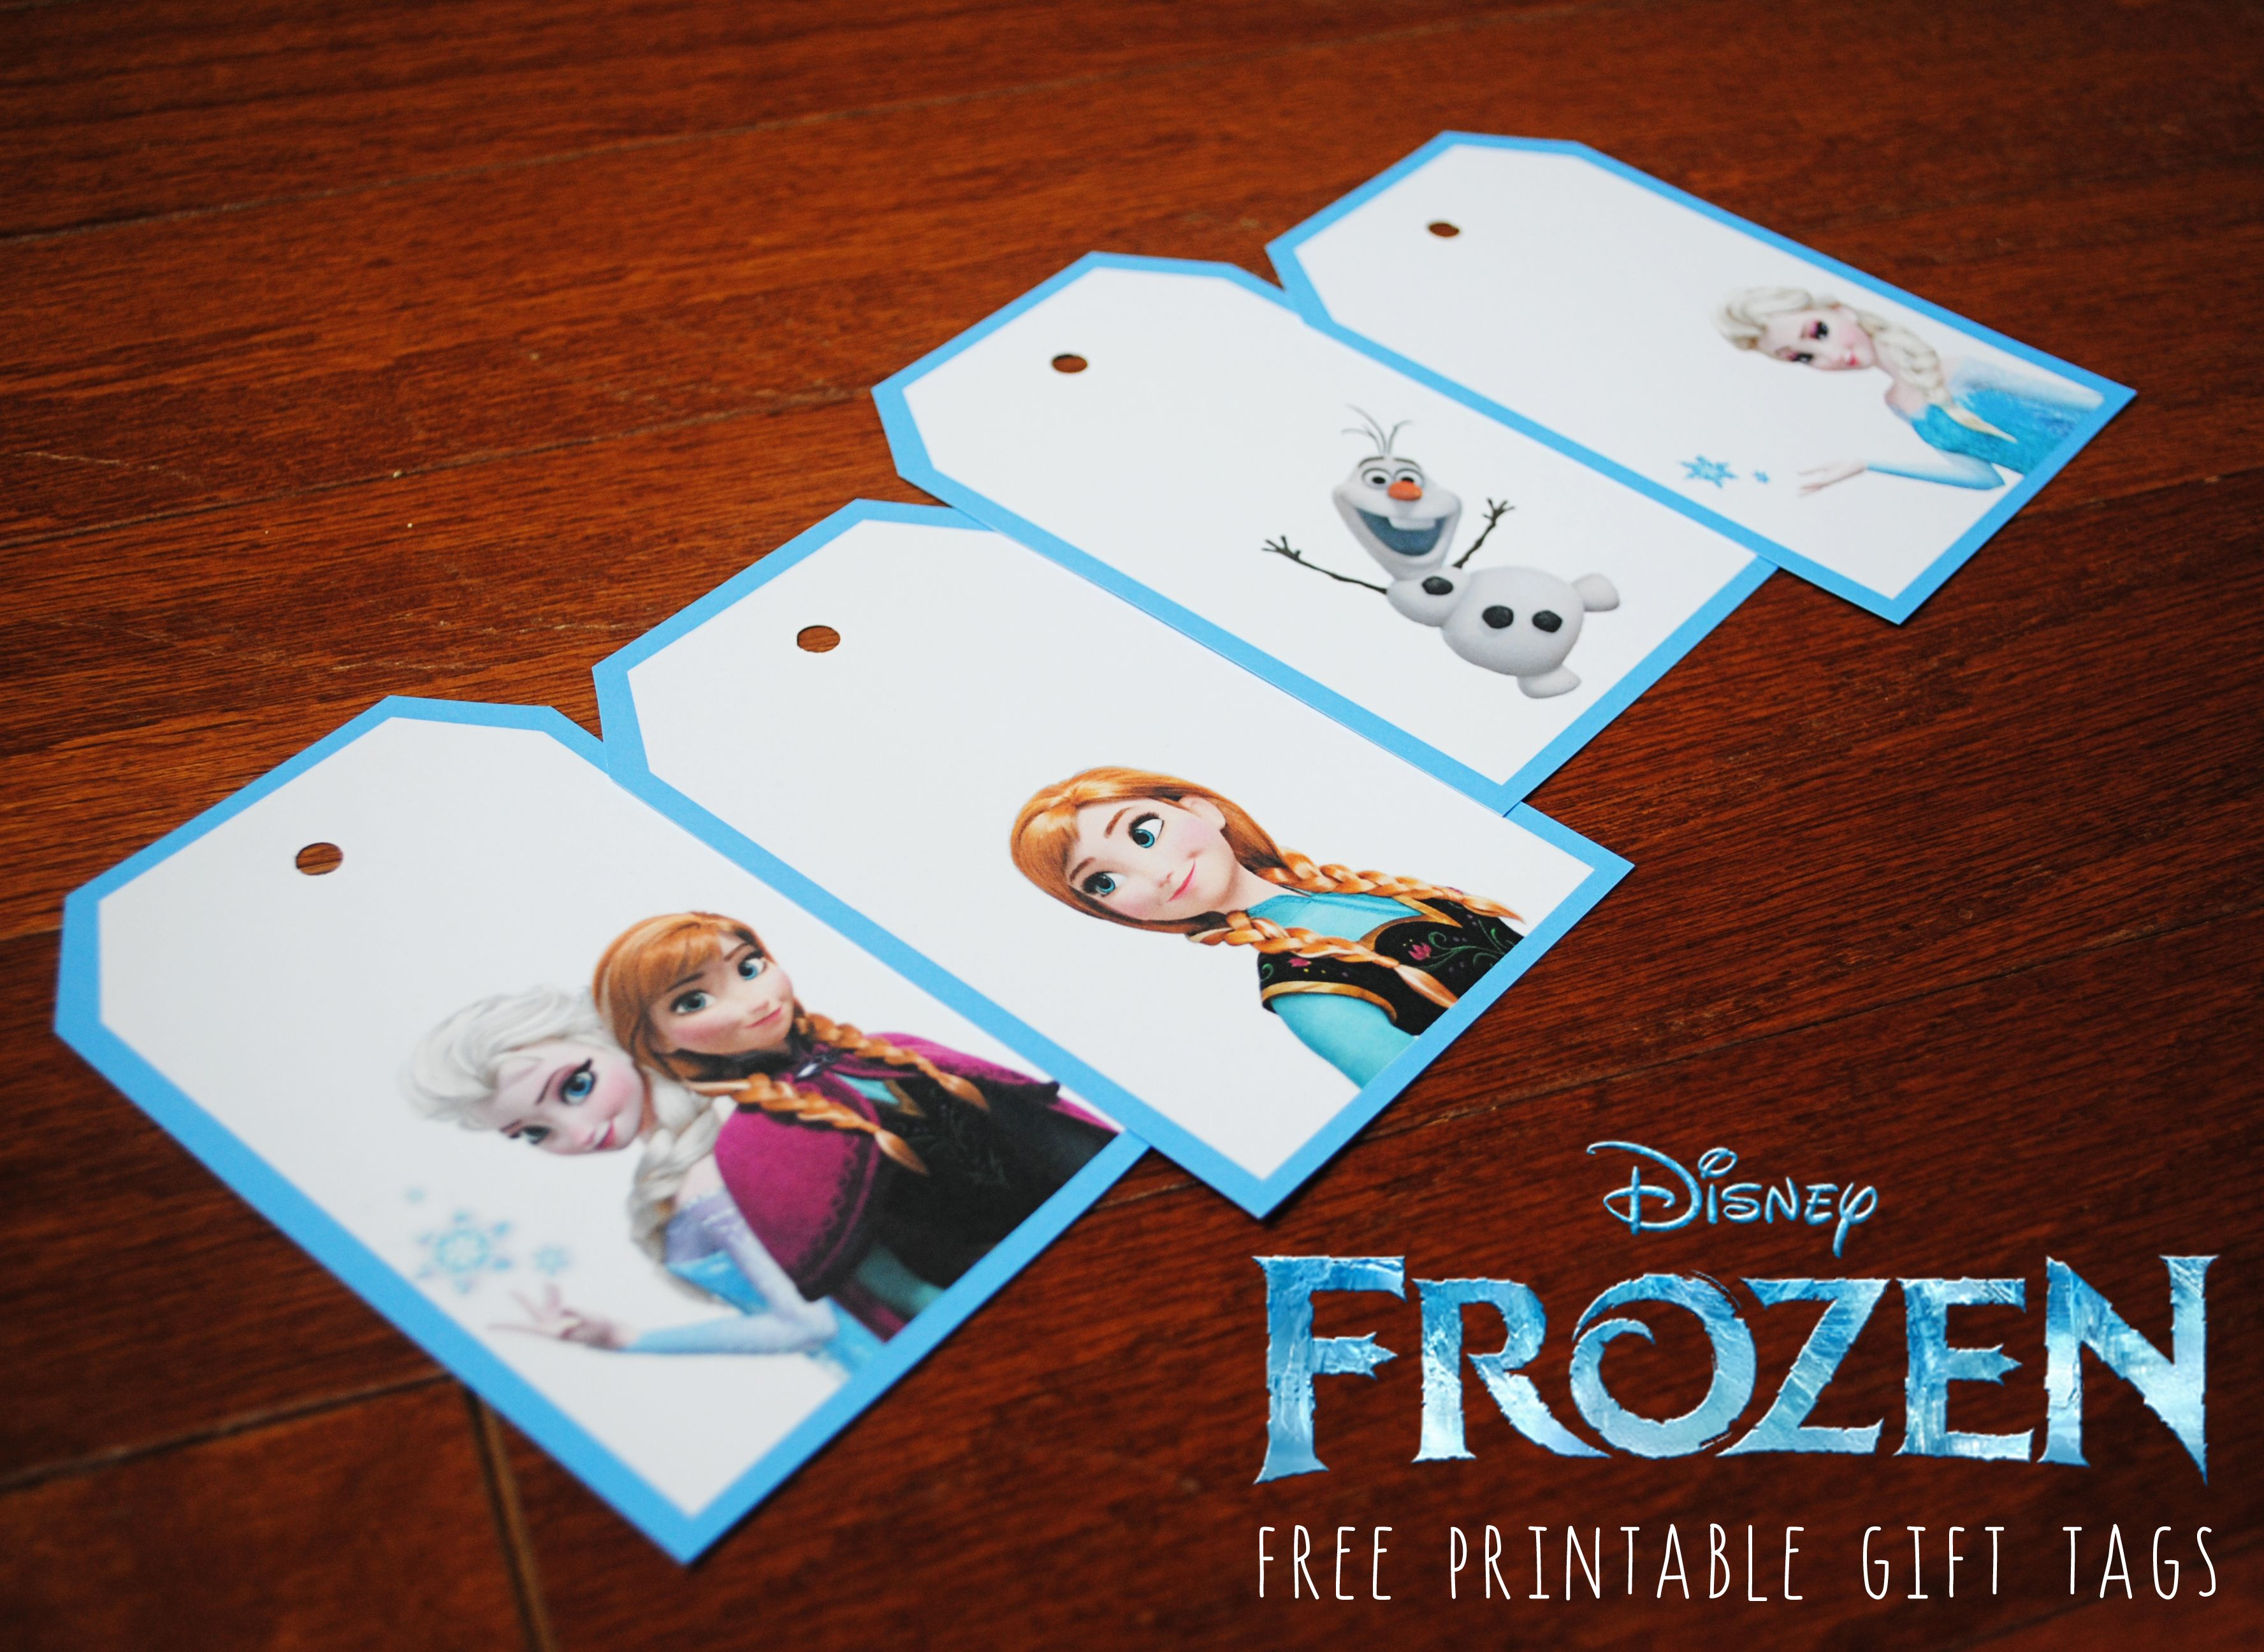 FROZEN Toys FROZEN Kids Meals and Free Printable FROZEN Gift